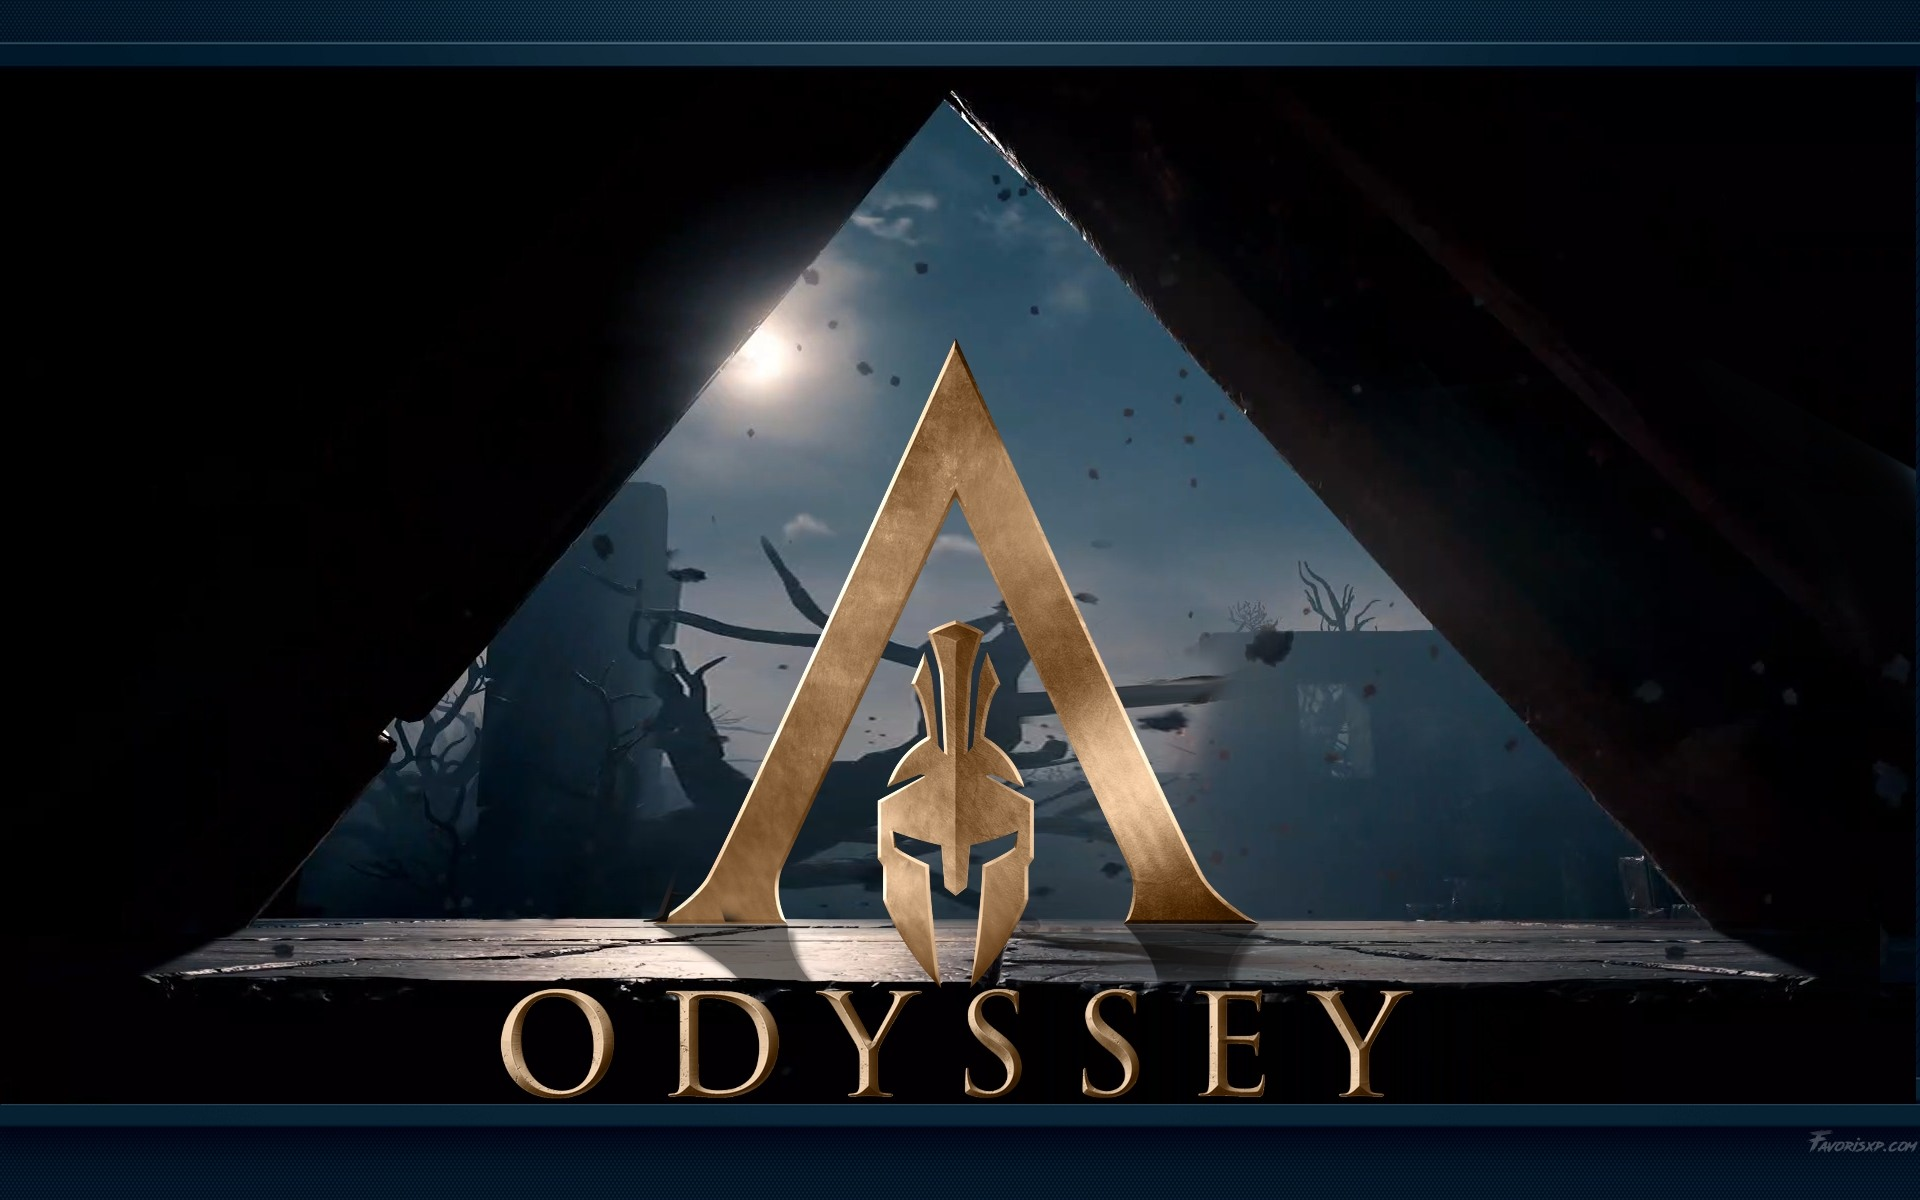 Ac Assassin S Creed Fonds D Ecran Odyssey Image Arriere Plan